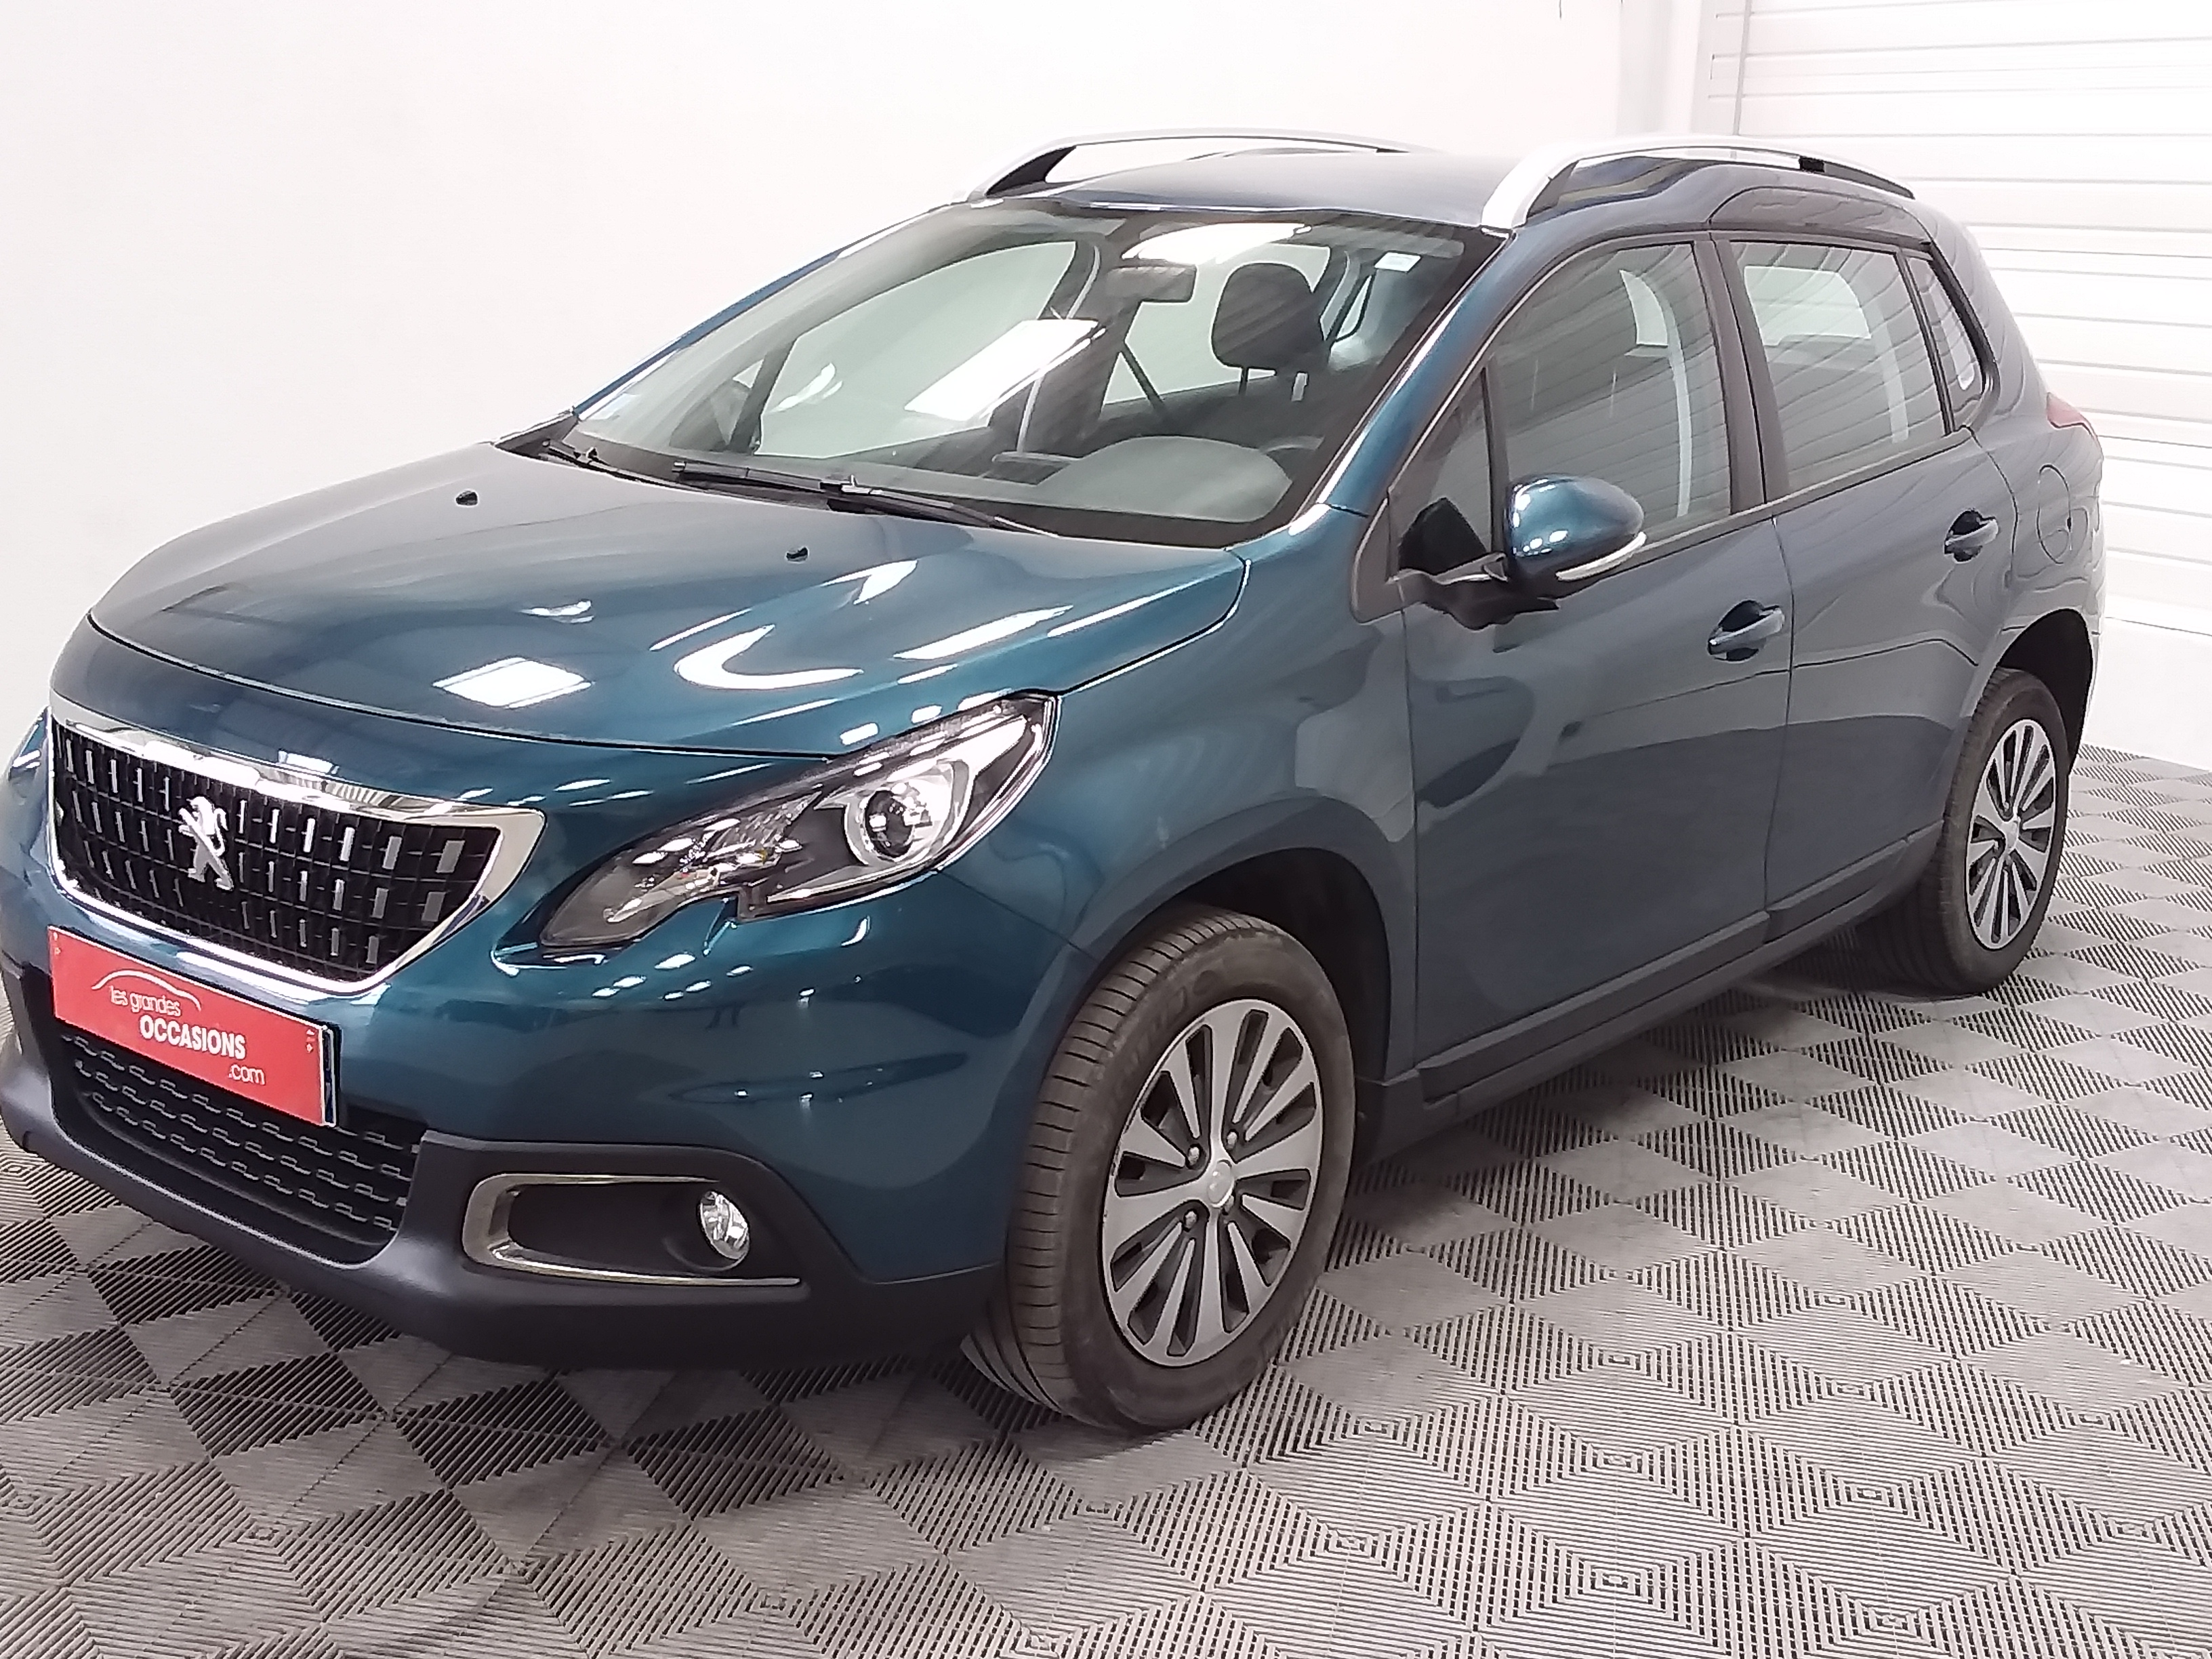 Photo du véhicule PEUGEOT 2008 BUSINESS 1.6 BlueHDi 100ch Active Business S&S ETG6